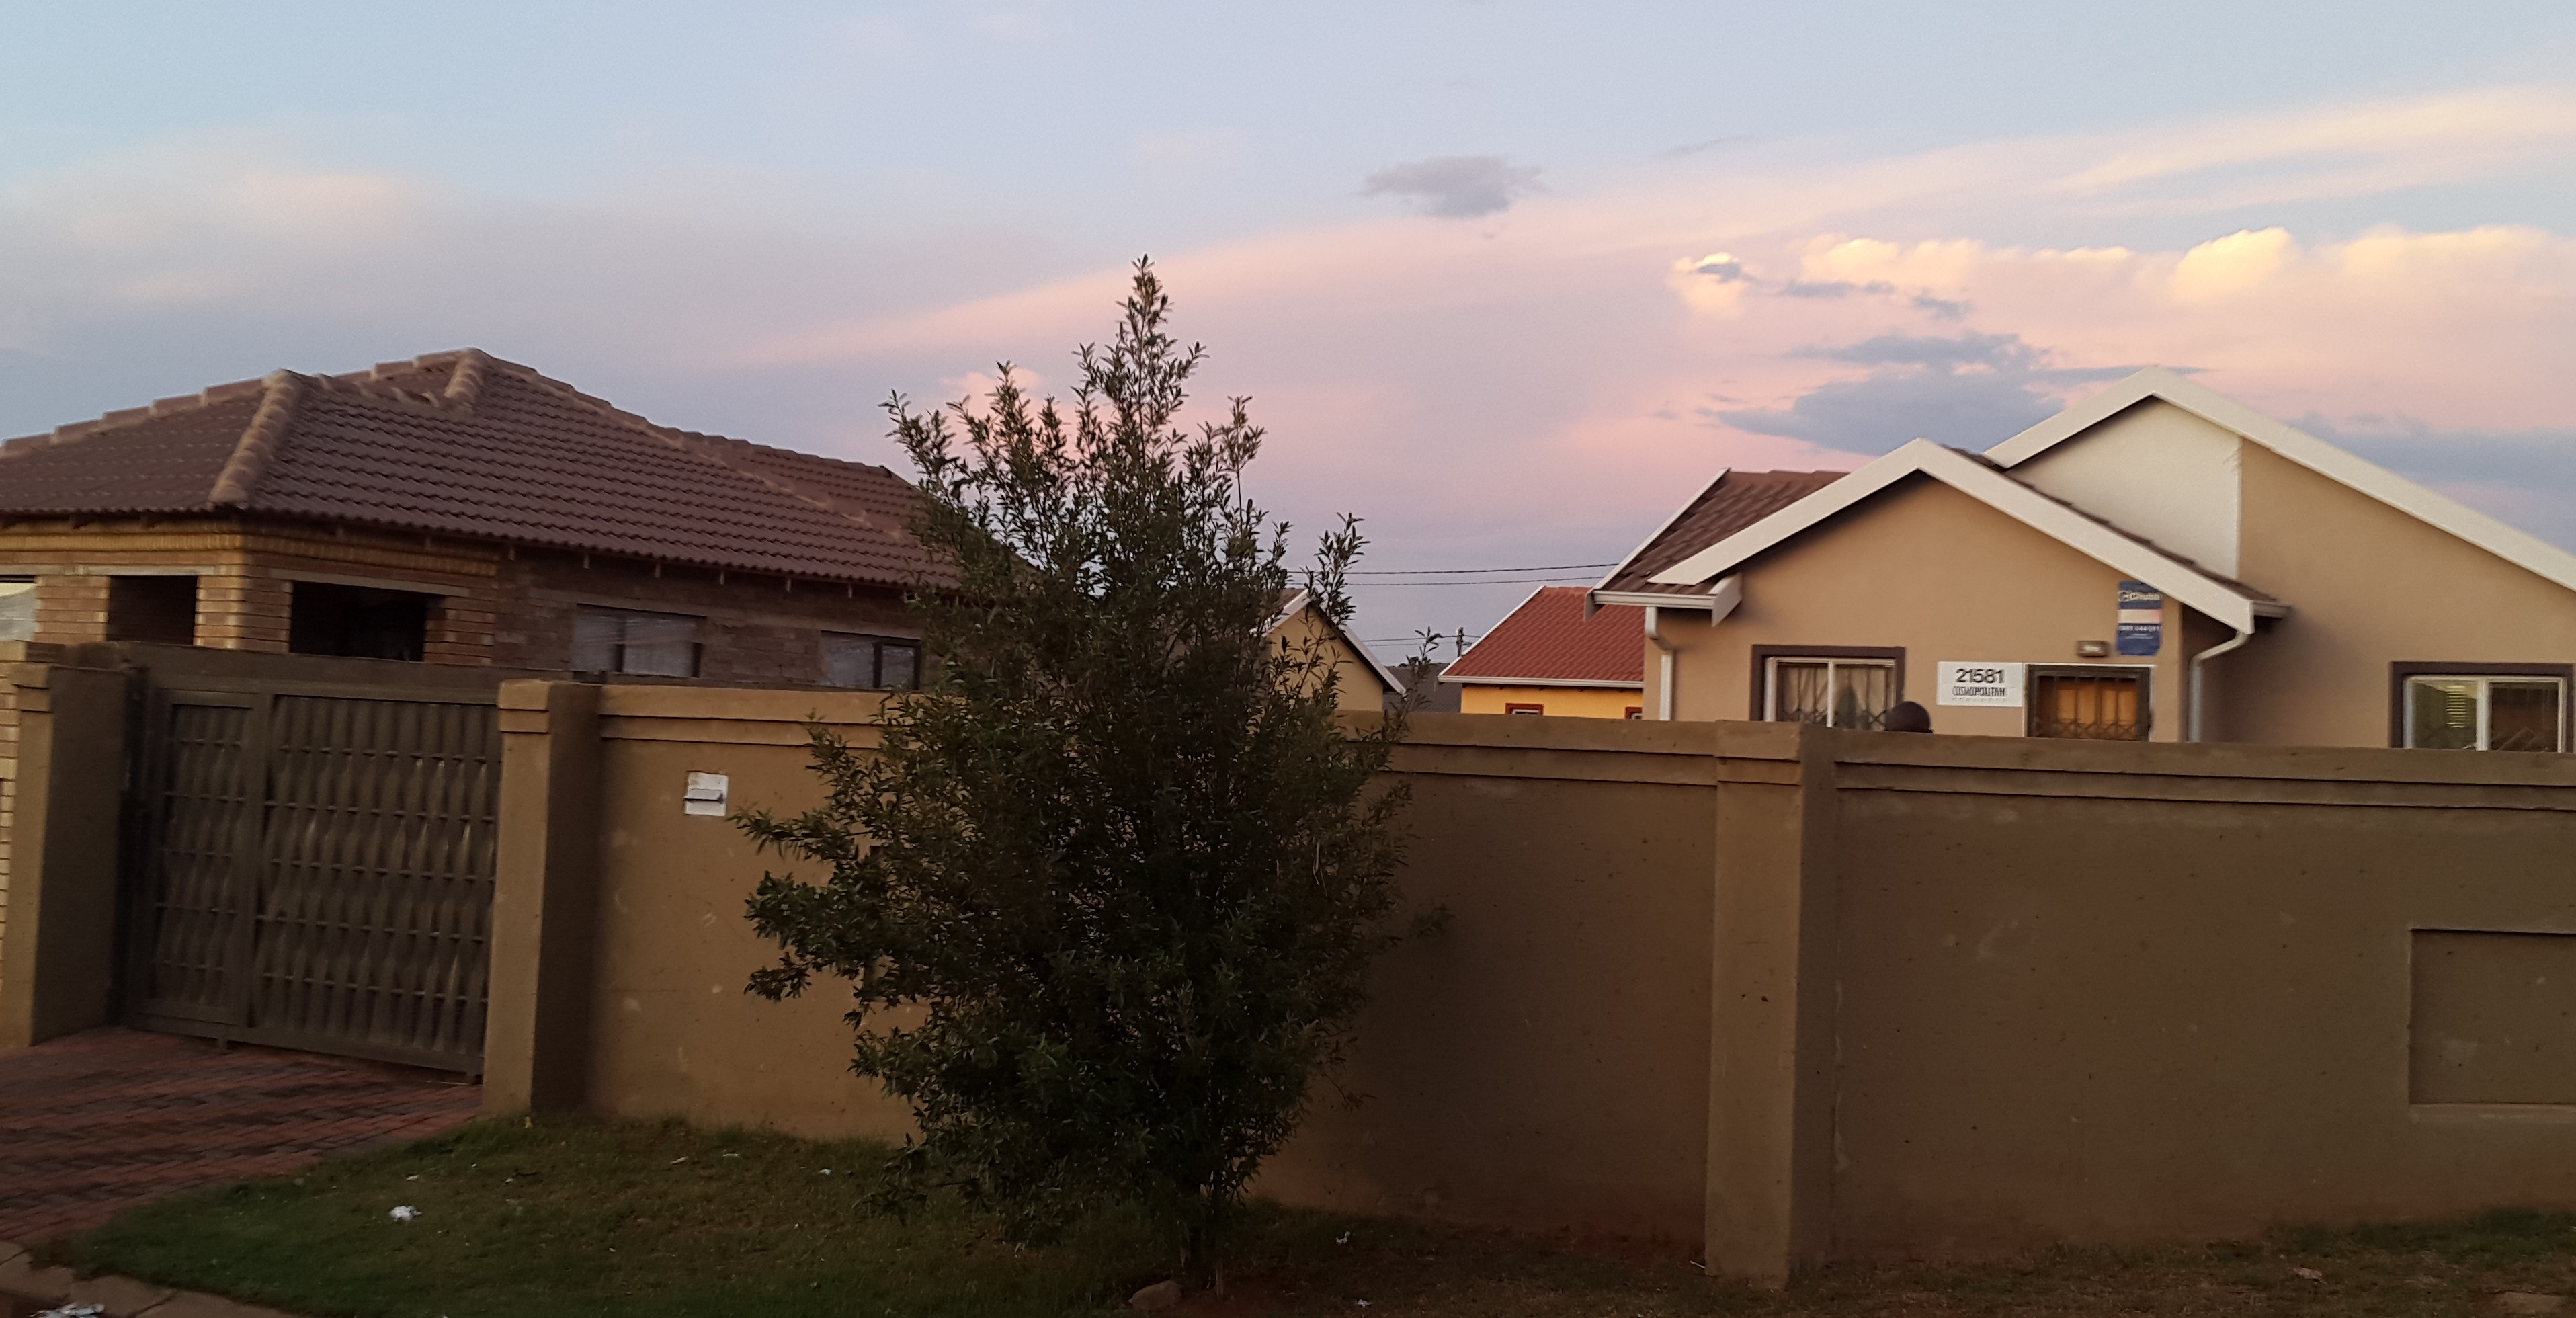 Protea glen 3 bedroom sanctuary for sale